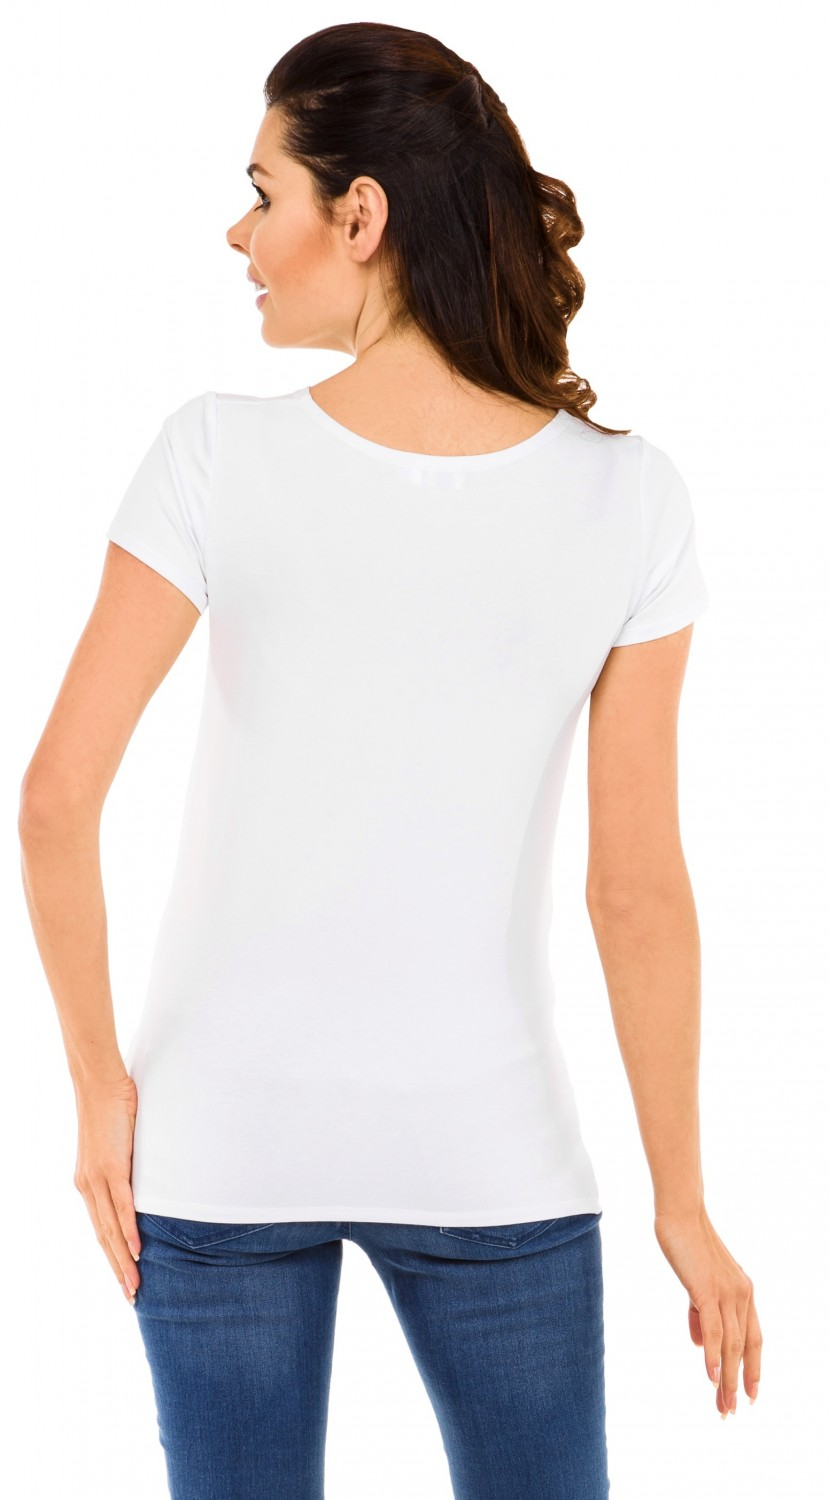 Side Ruched Pregnancy Maternity T-shirt Tops Pinkydot is a new Pinkydot Women's Side Ruched 3/4 Sleeve Maternity Scoopneck T Shirt Top Pregnancy Clothes. by Pinkydot. $ - $ $ 9 $ 29 99 Prime. FREE Shipping on eligible orders. Some sizes/colors are Prime eligible. out of 5 stars